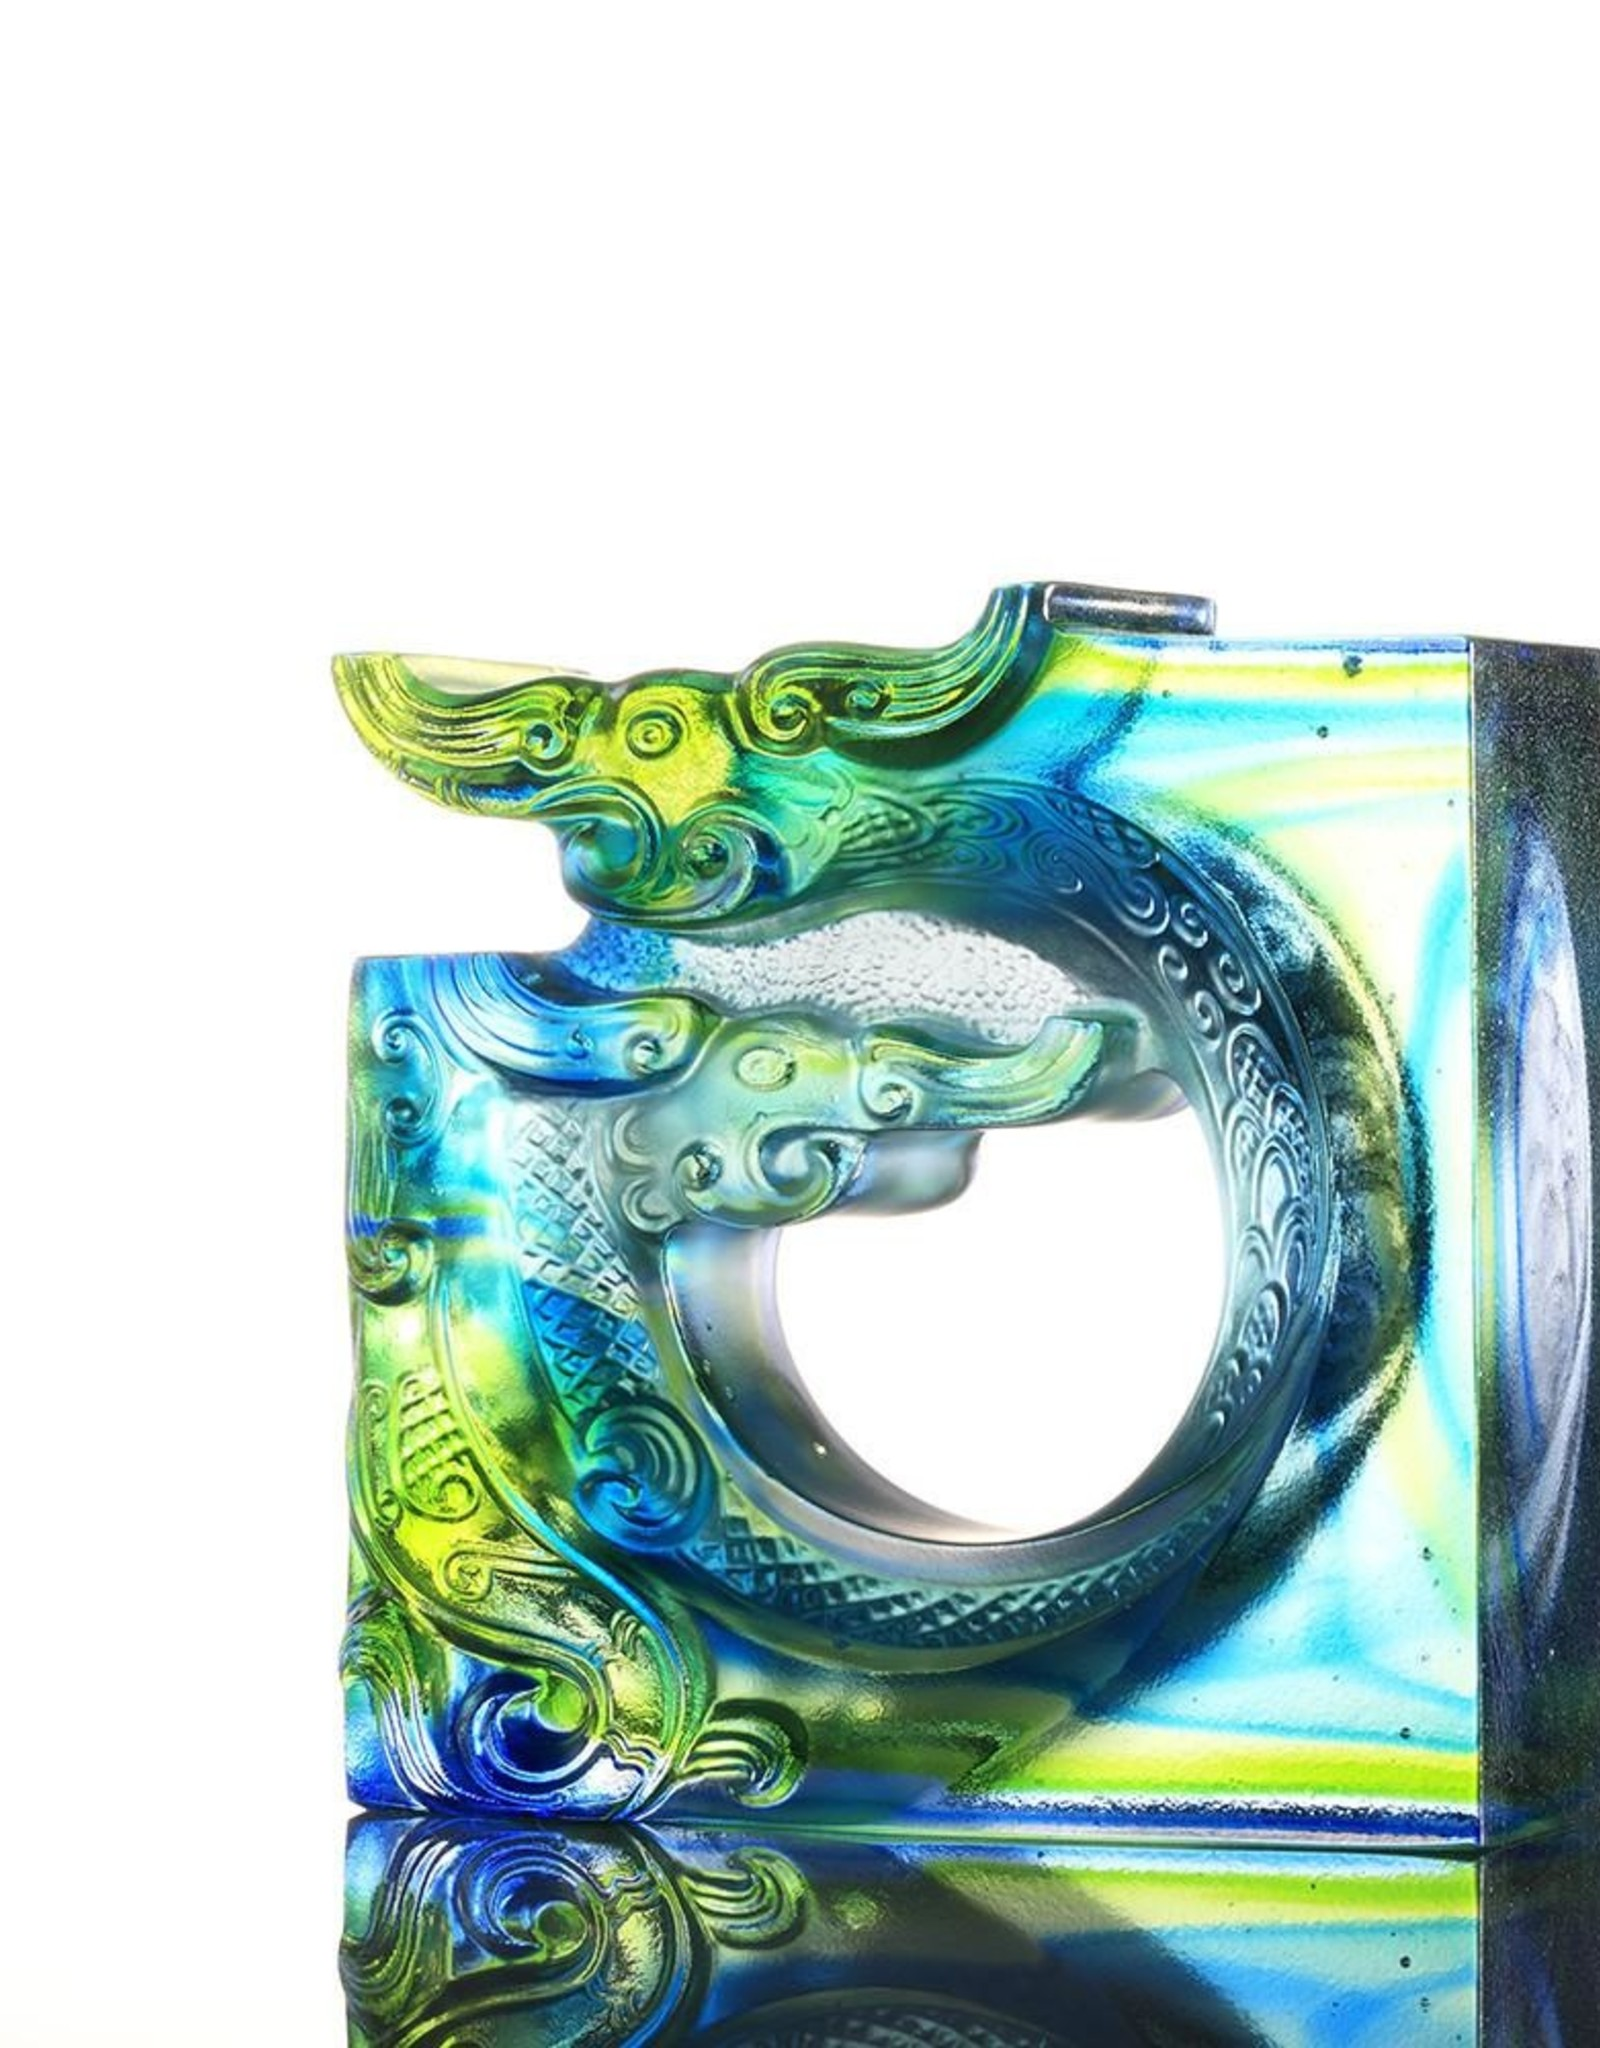 LIULI Crystal Art Crystal Dragon, The Beauty of Harmony-An Unassuming Heart, Bluish/Green Clear (Limited Edition)